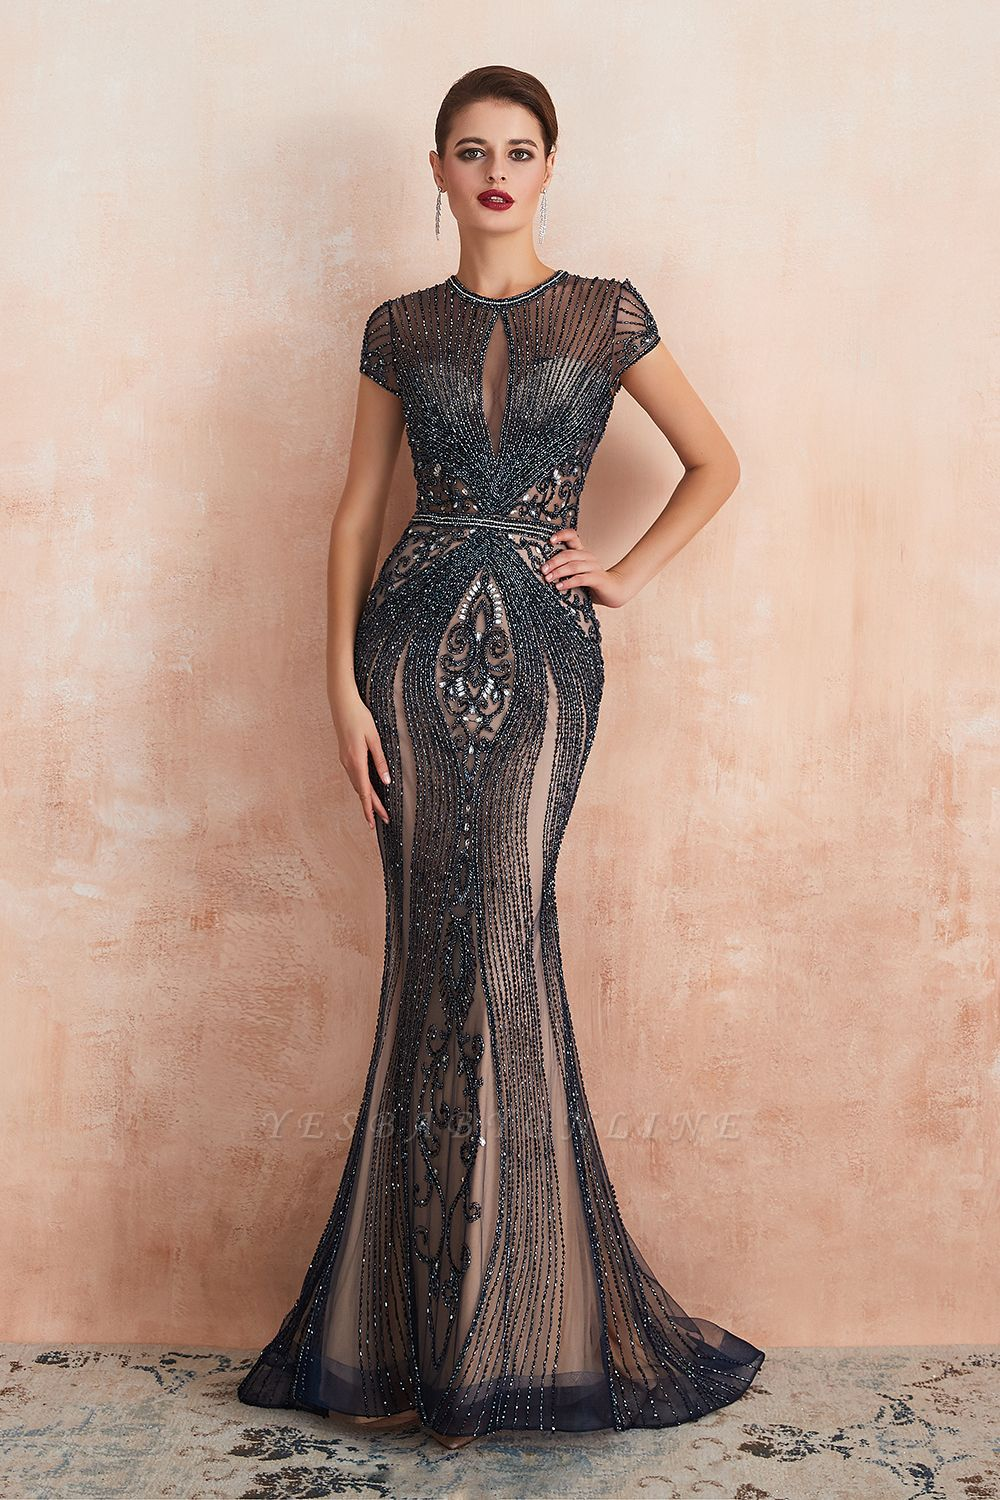 Cap Sleeves Keyhole Jewel Gorgeous Beaded Long Prom Dresses | Elegant Long Evening Dresses